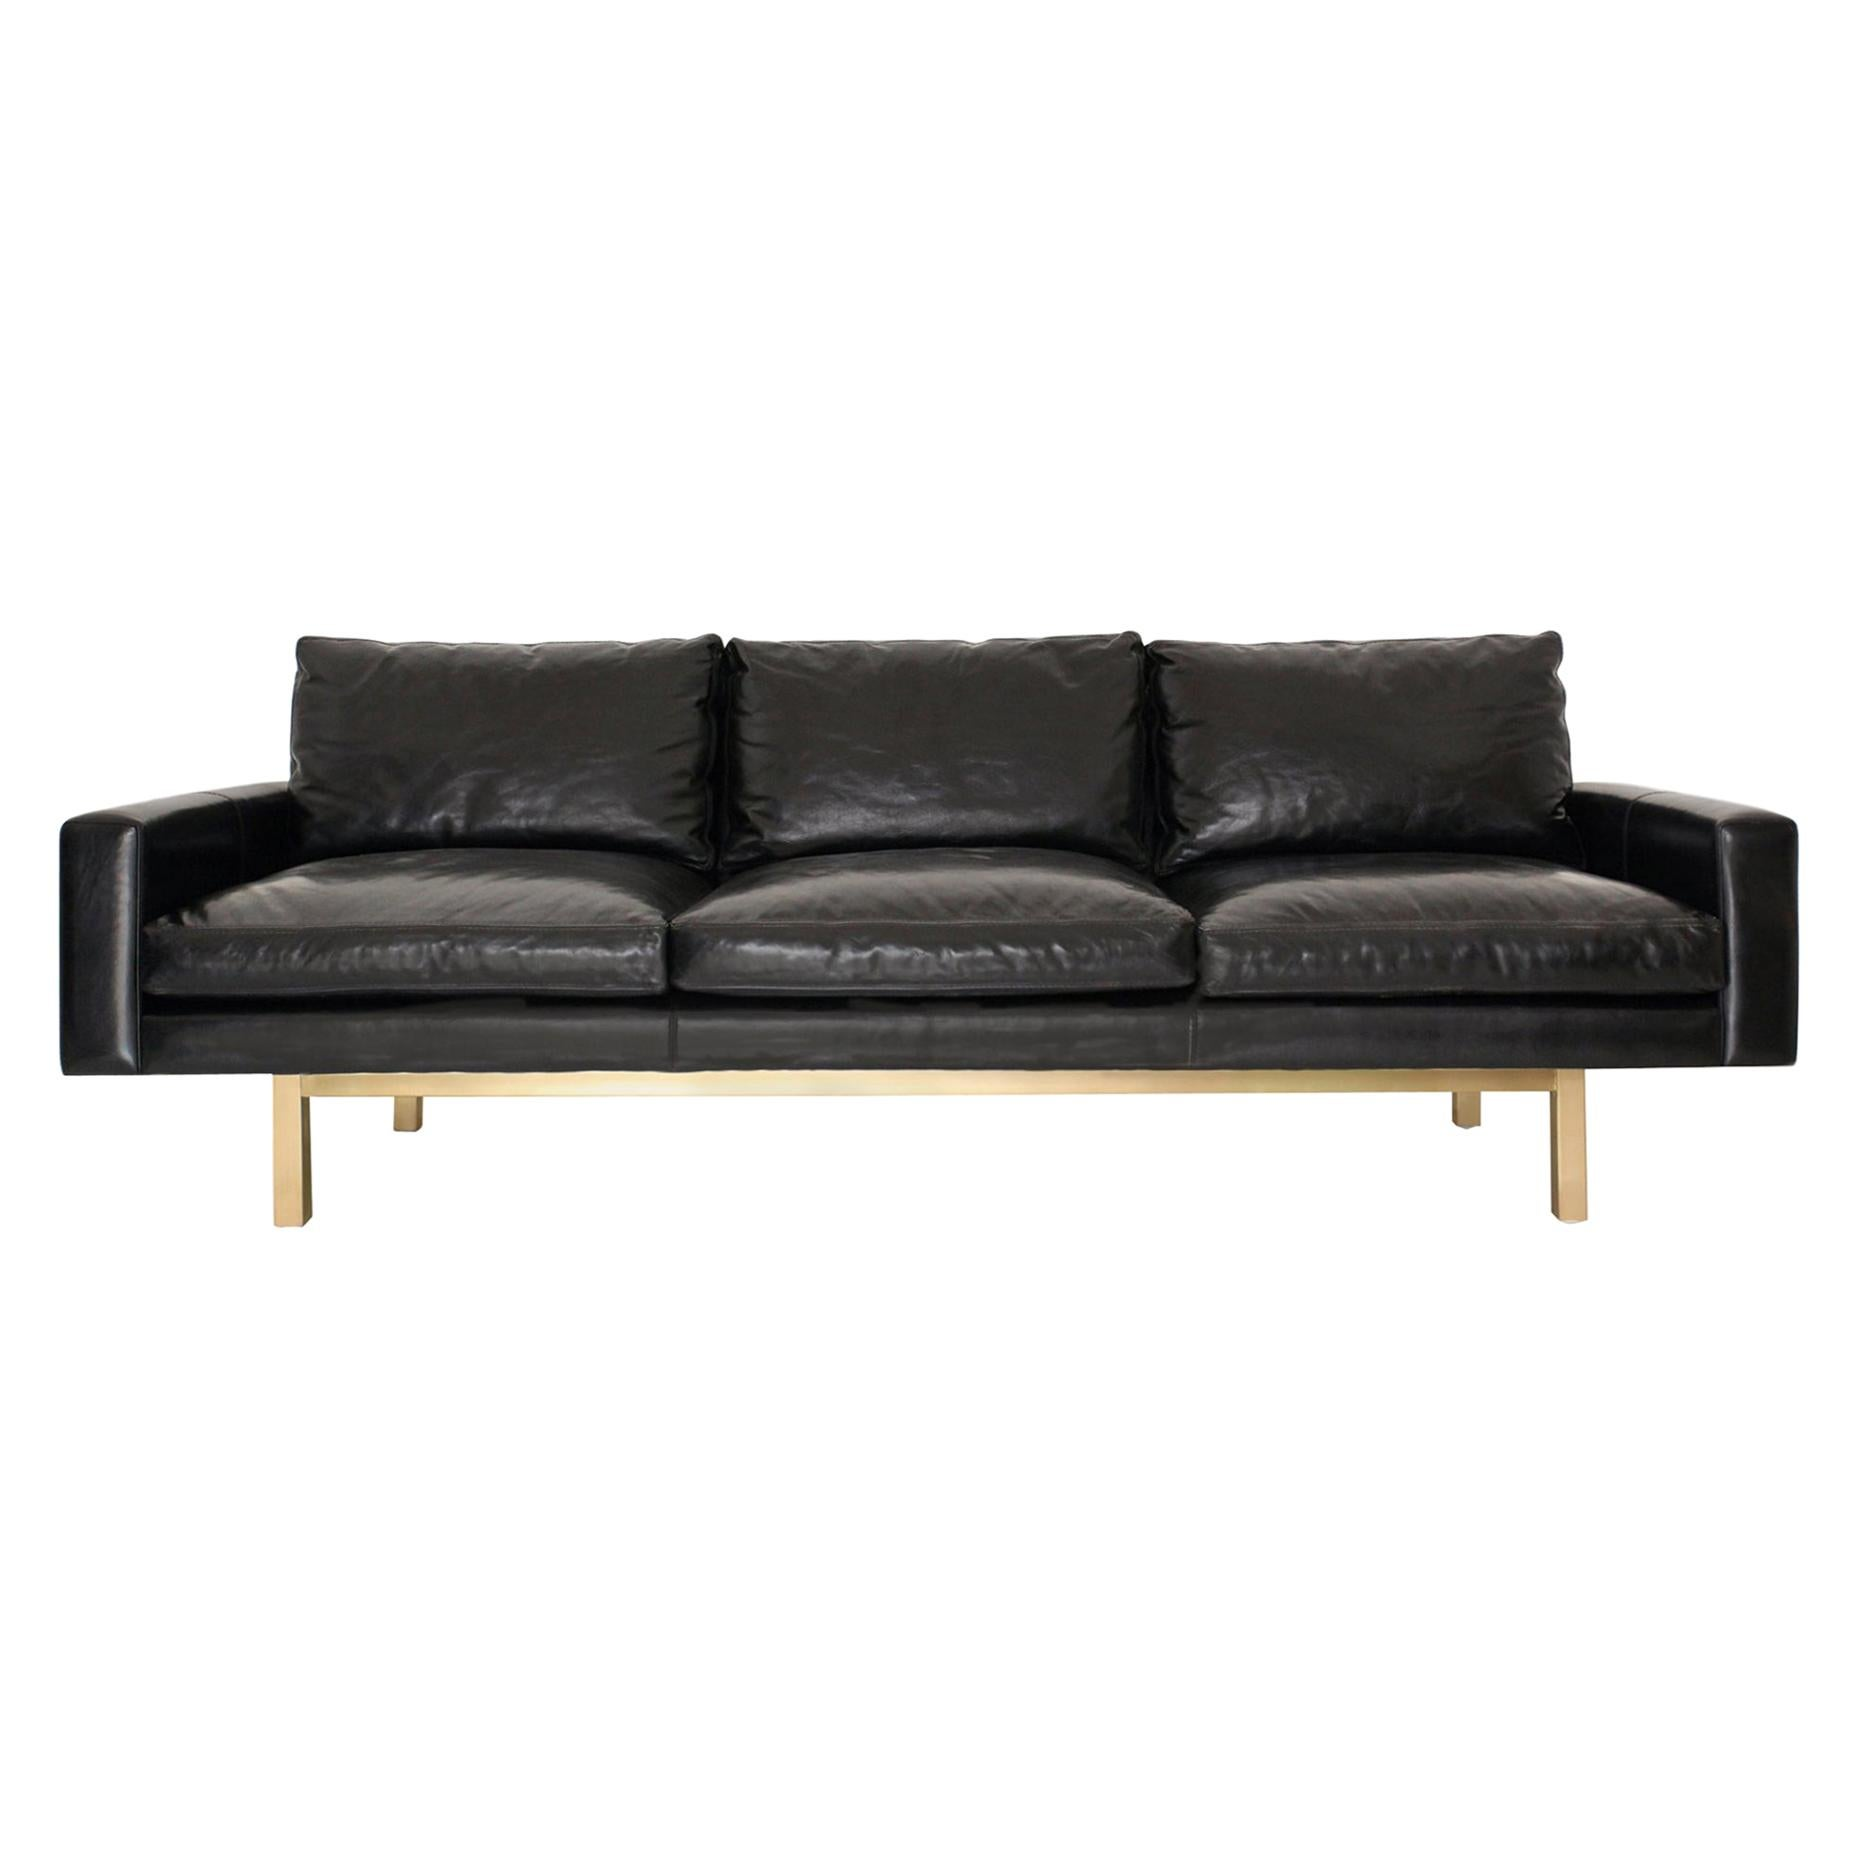 Contemporary X-Large Standard Sofa in Black Leather with Brass Base